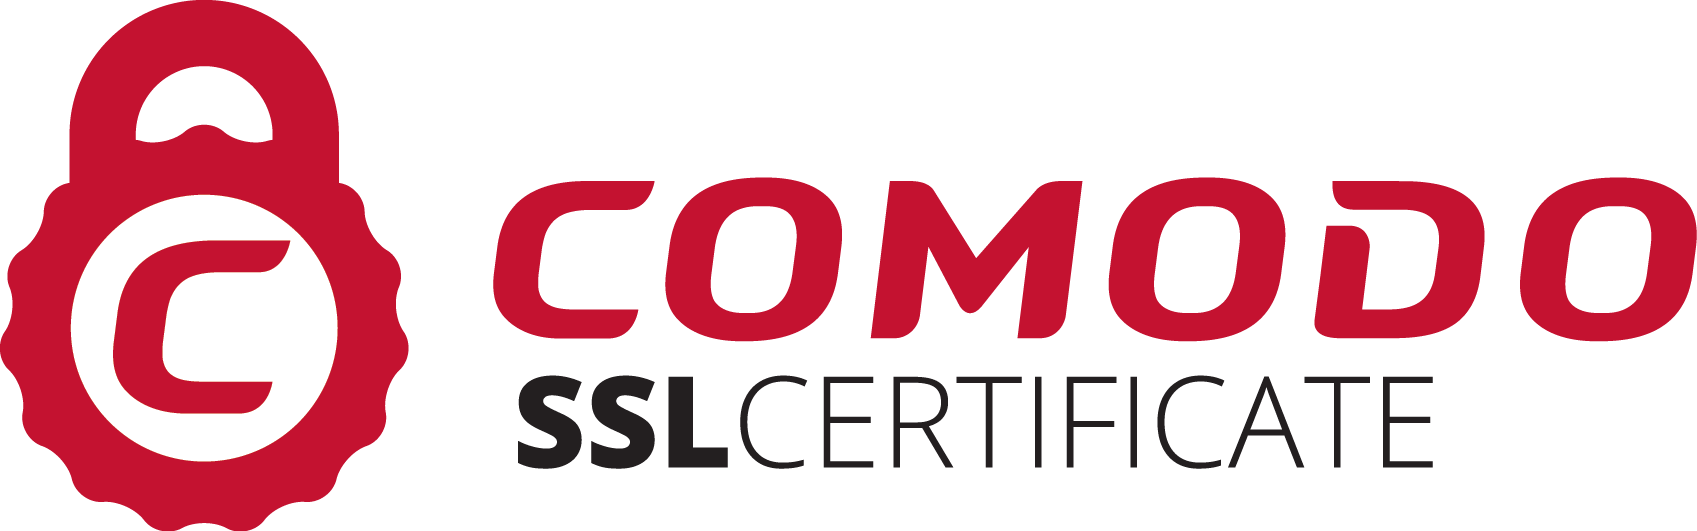 Security ssl certificates comodo logo abf090af7ba4d5f6bf1886716241045a852a7ab9be7567f0e19664b01180a651